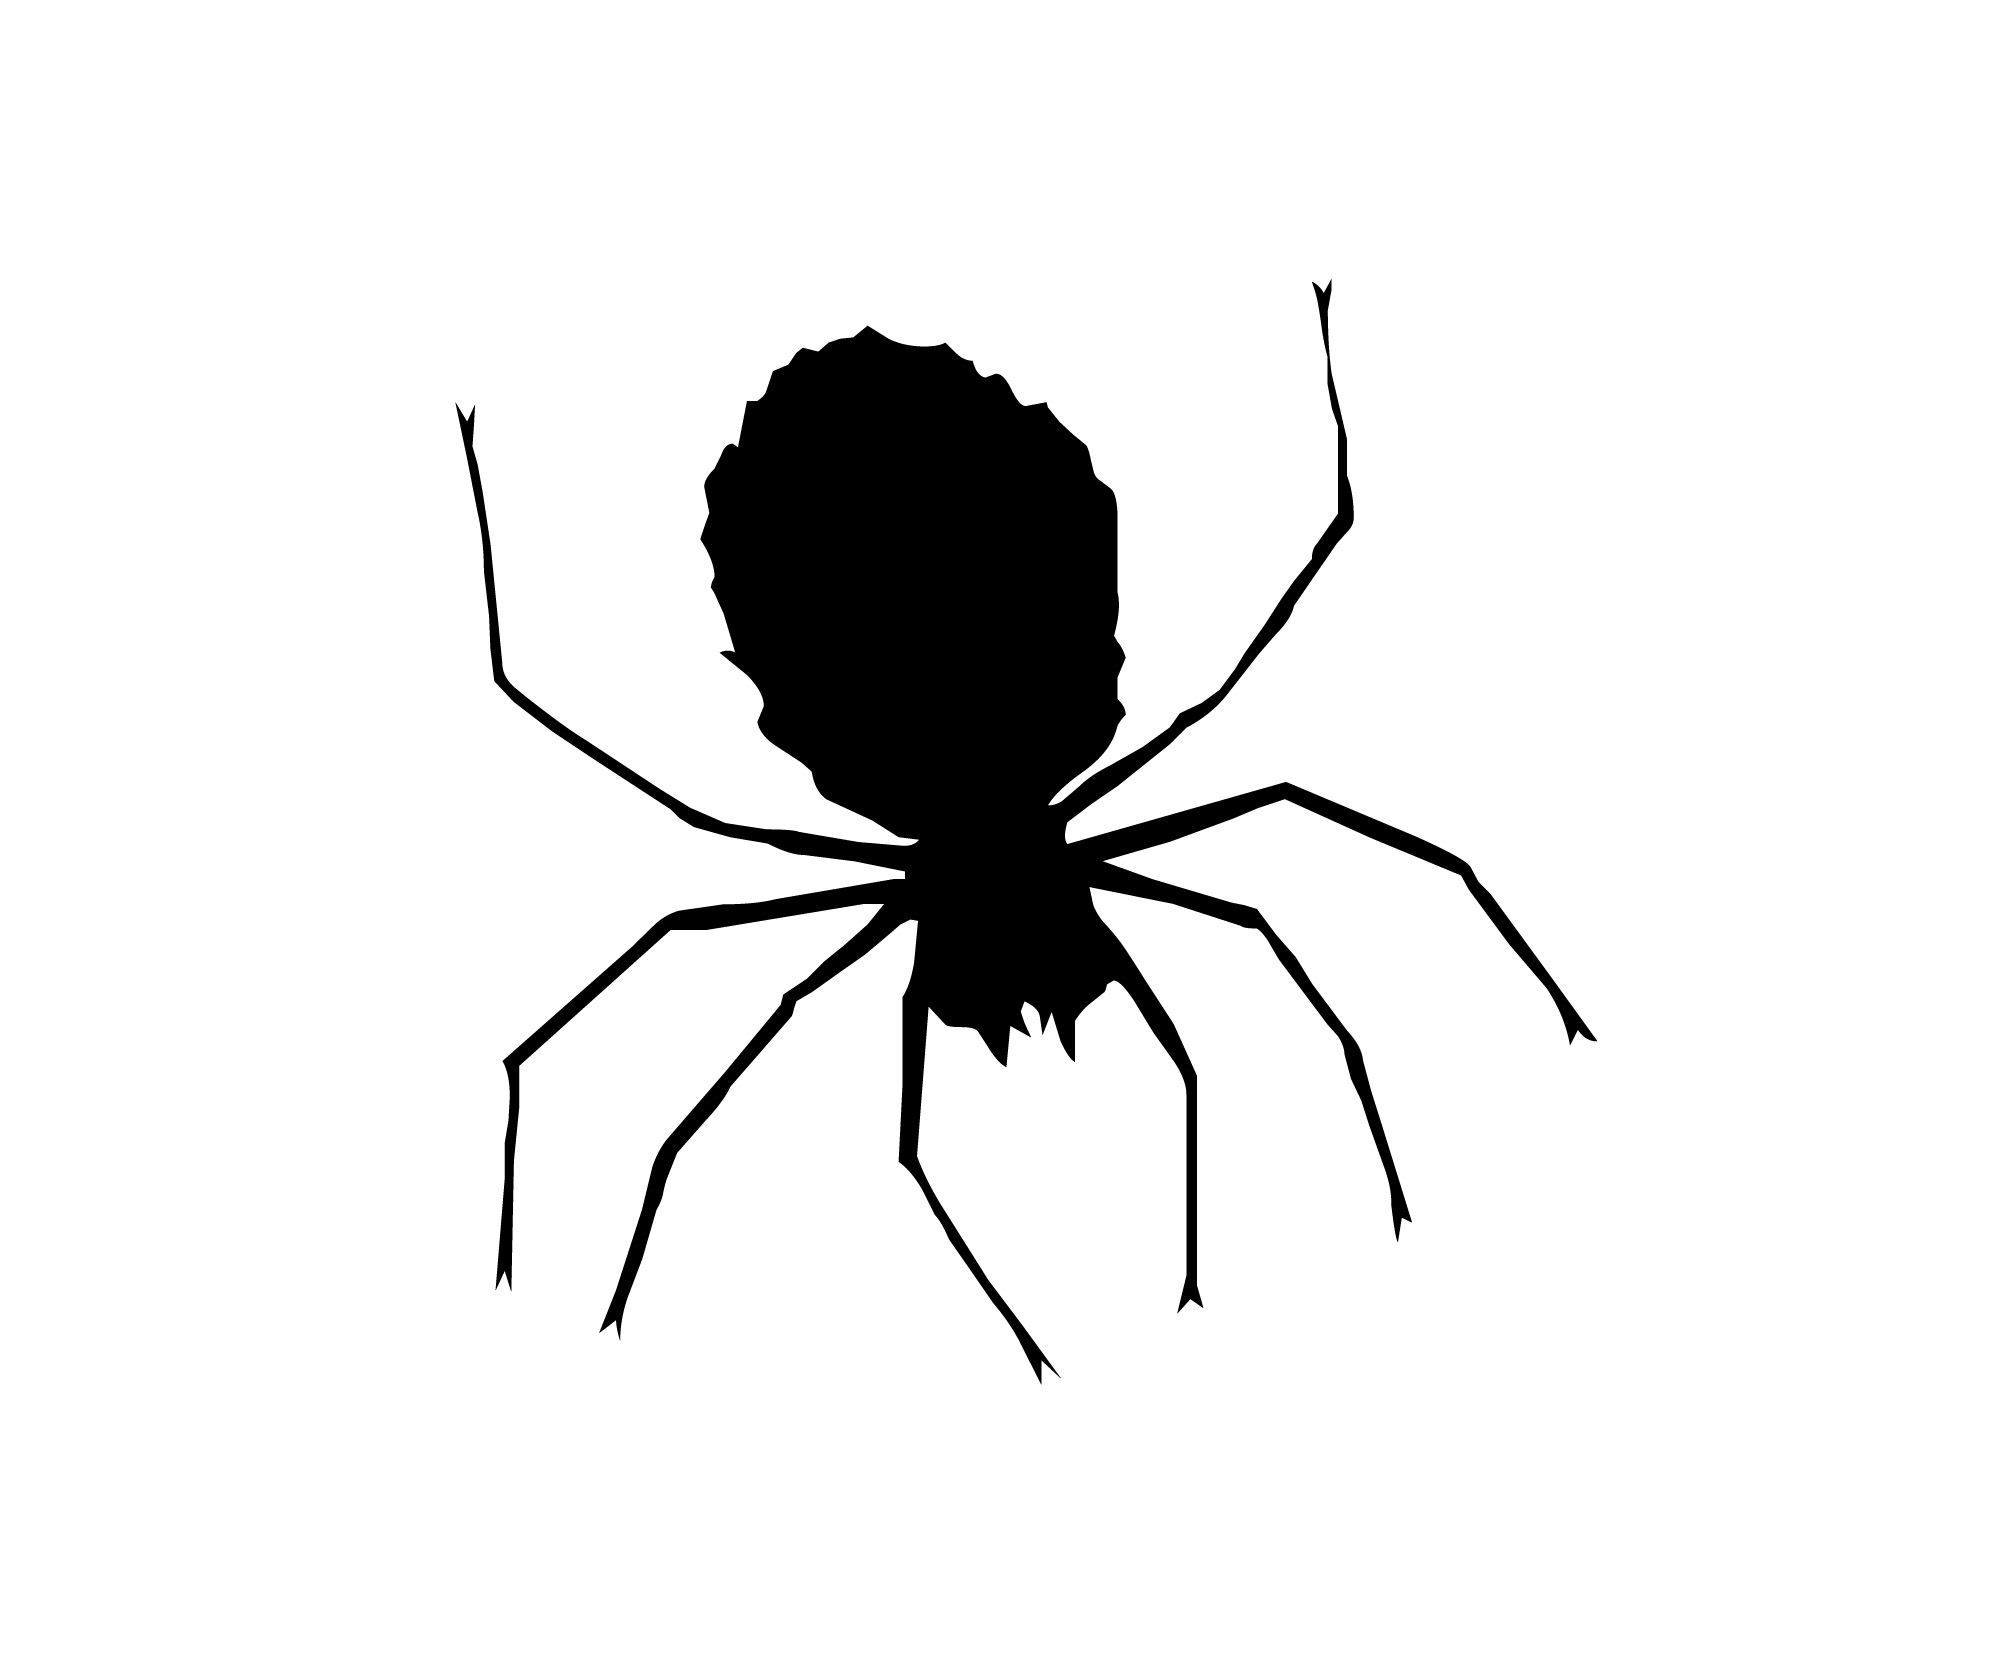 Image of clipart spider.